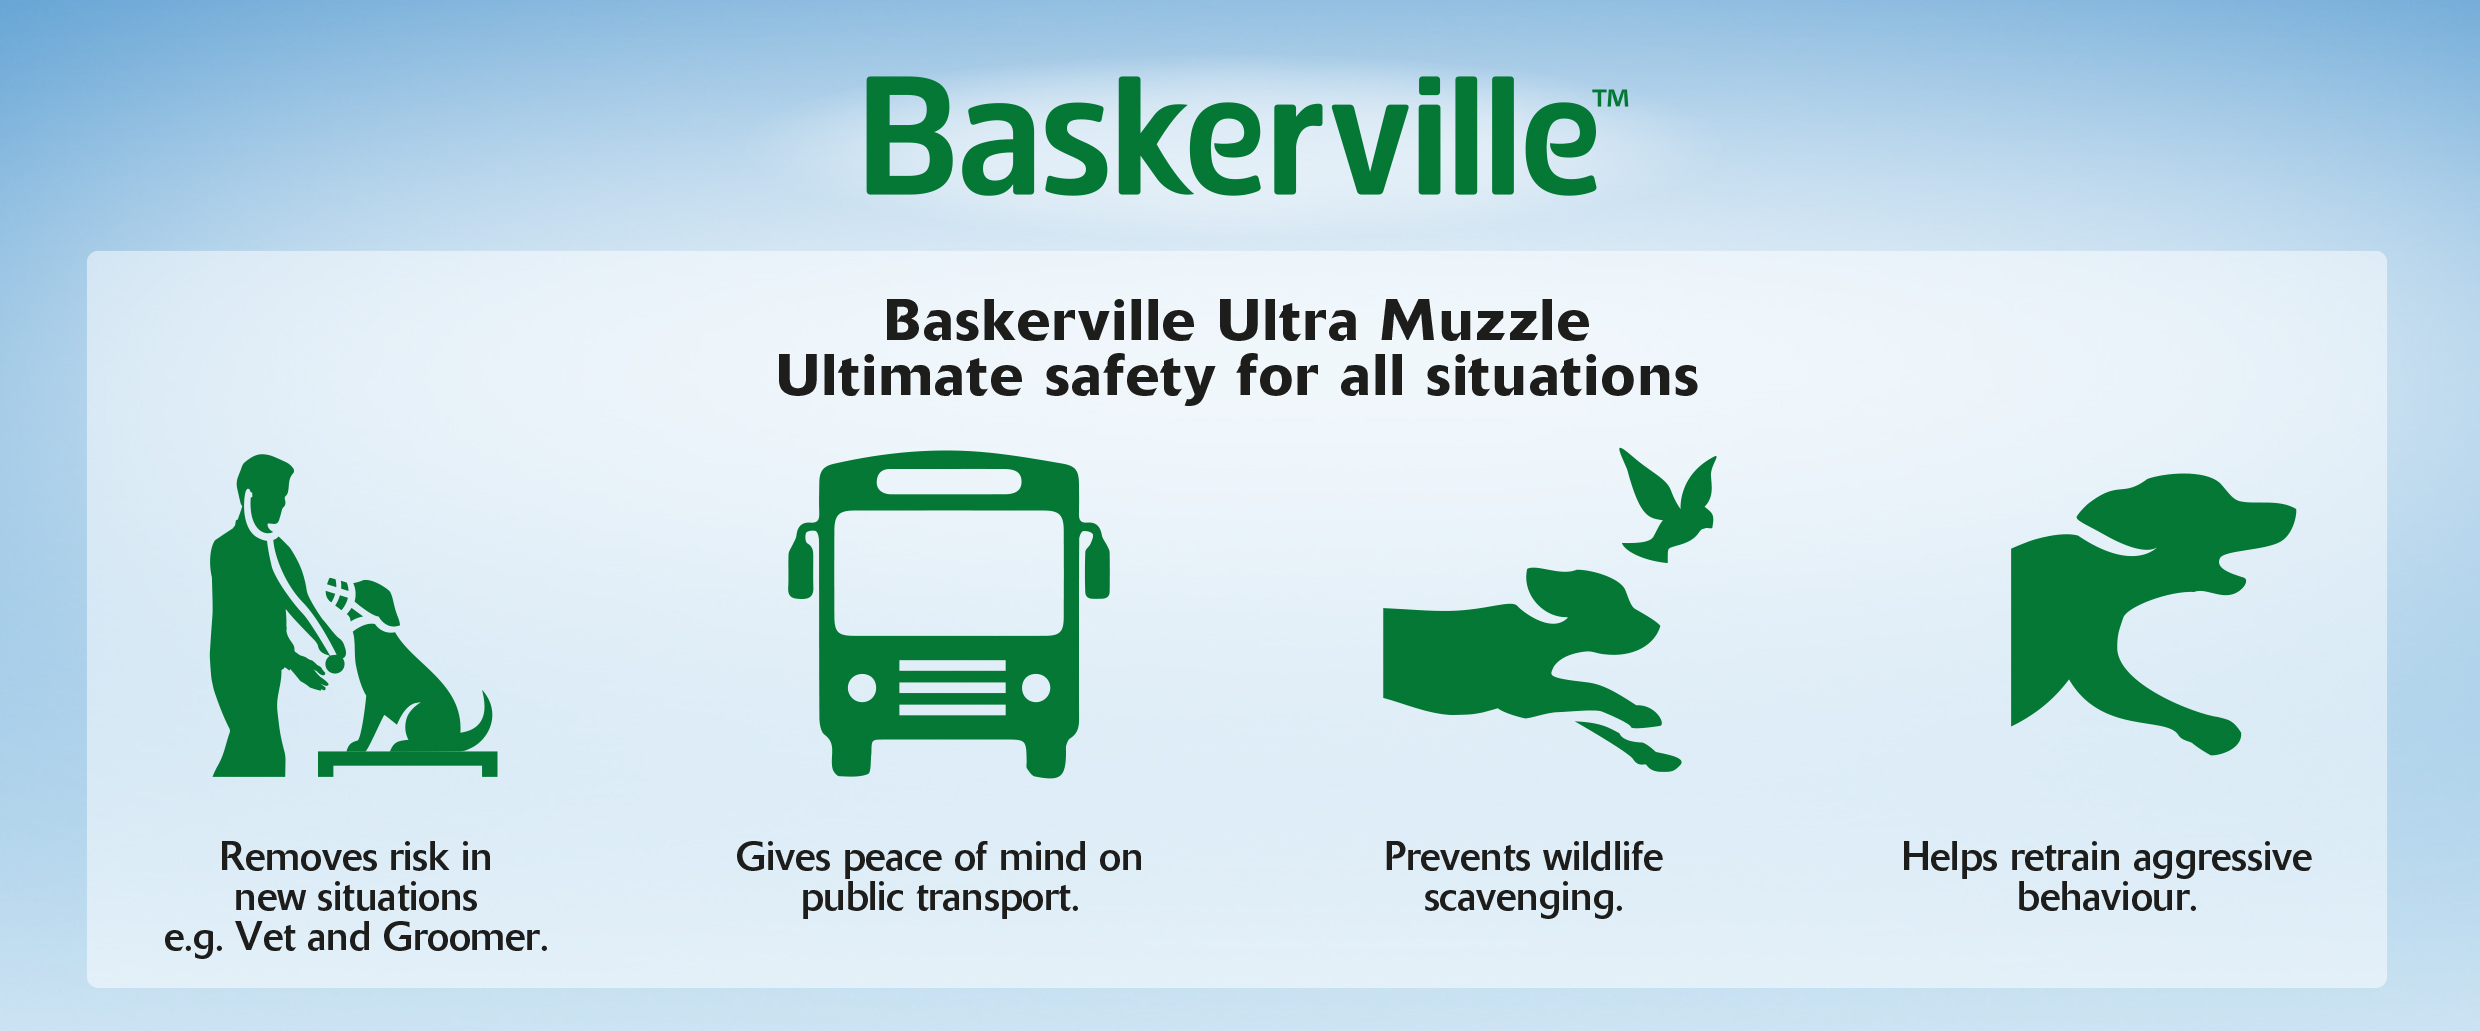 Baskerville Muzzle Situations